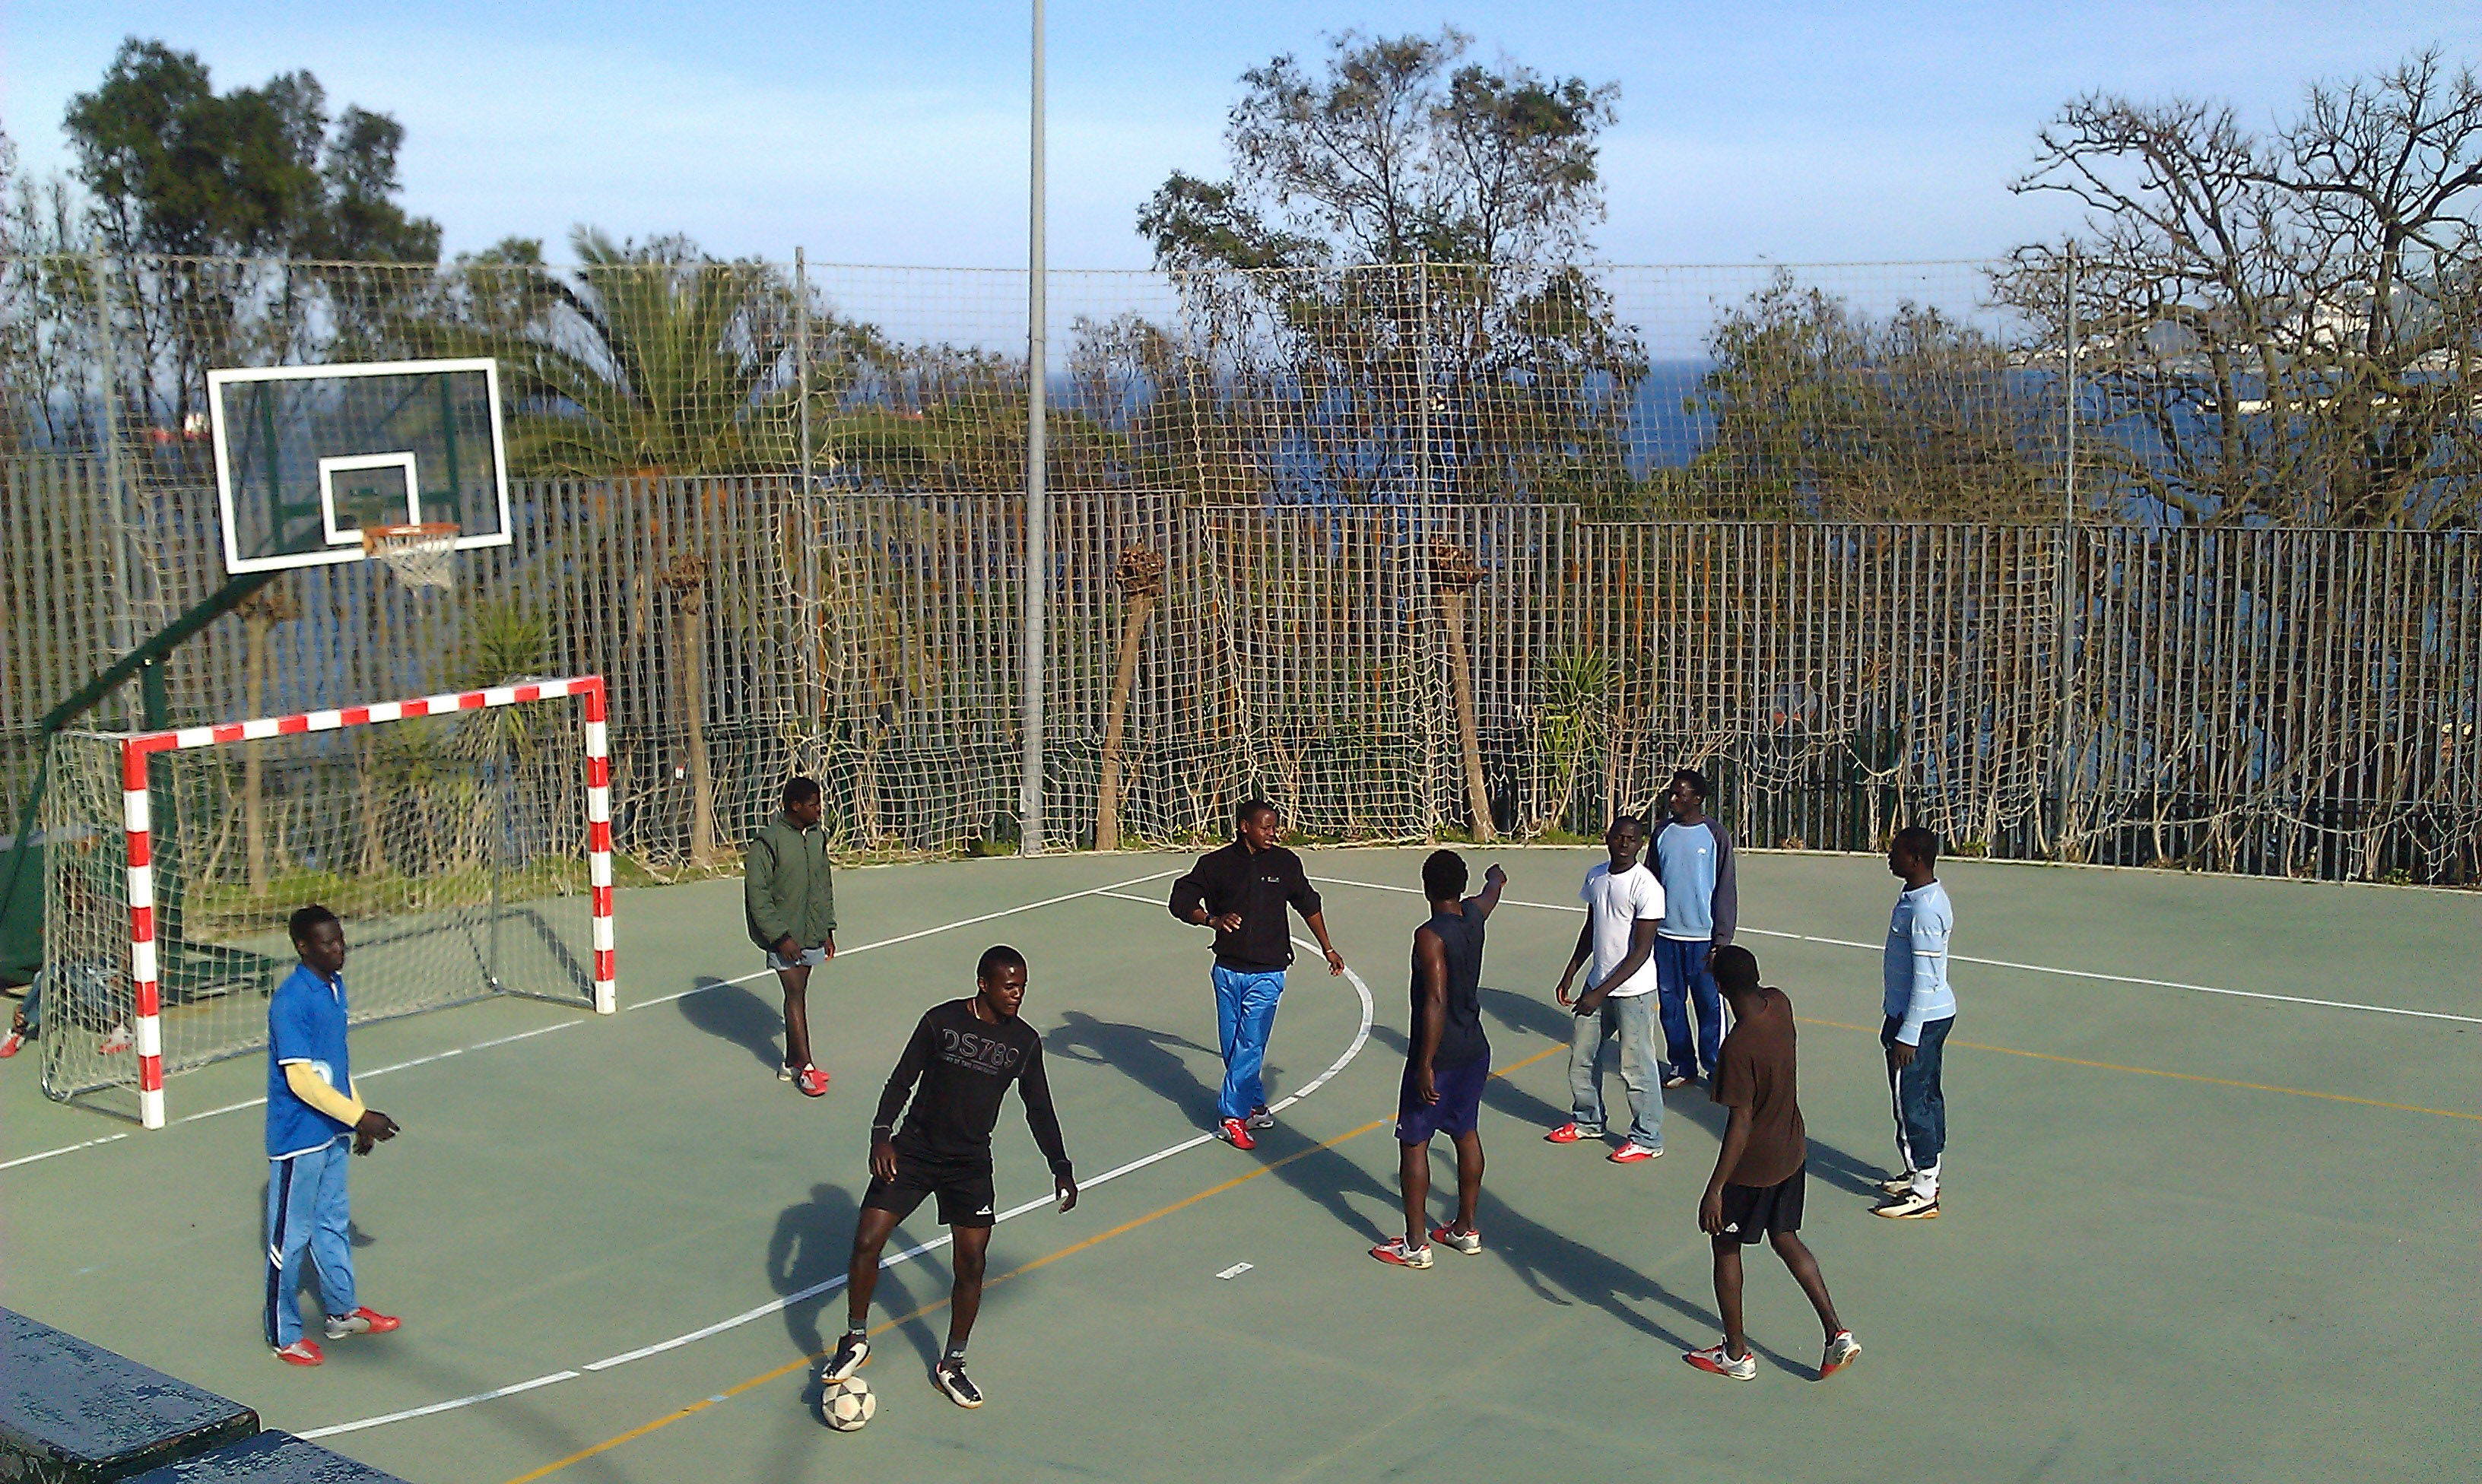 football game at CETI, immigration centre in Ceuta, Spain